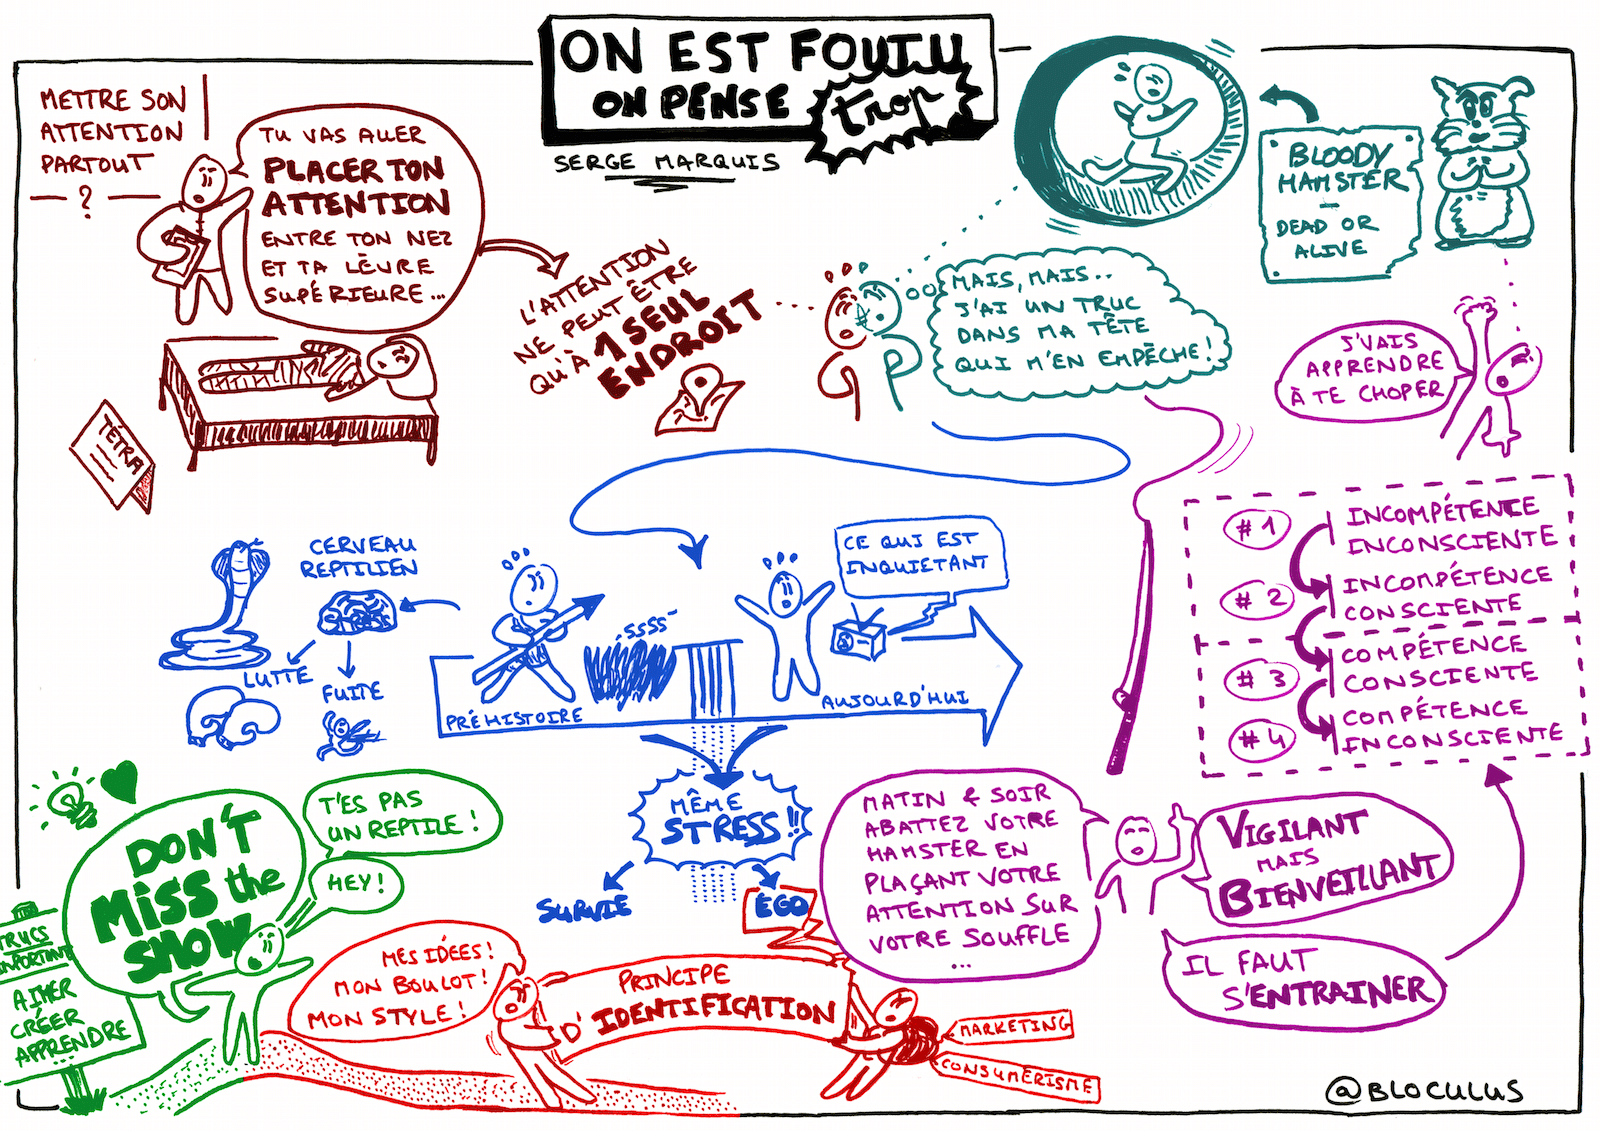 Sketchnote 'On est foutus, on pense trop'